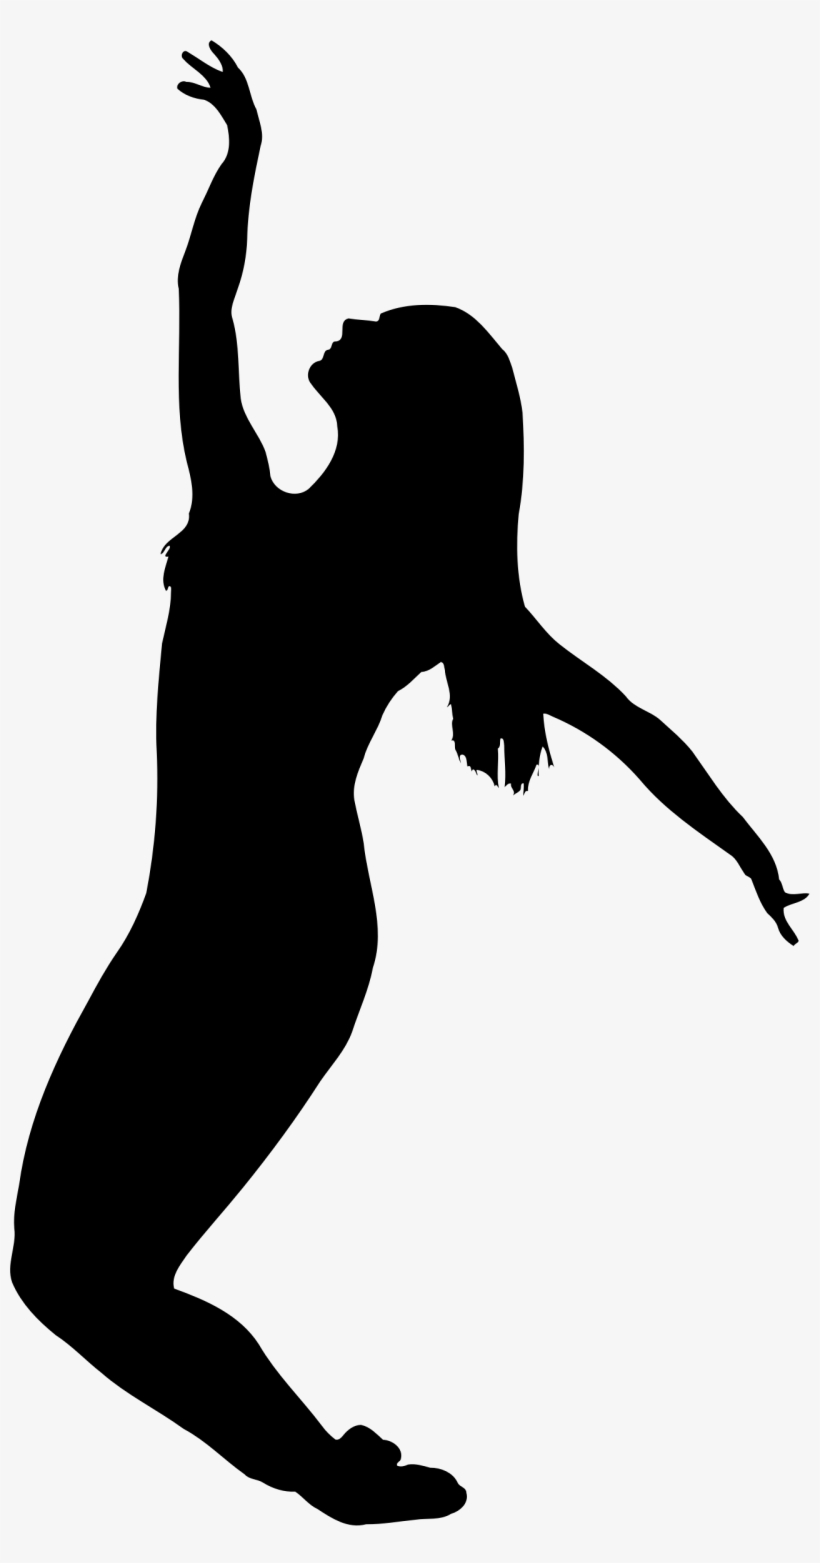 Clipart Dancer Silhouette Silhouette Fille Qui Saute Transparent Png 1280x2378 Free Download On Nicepng